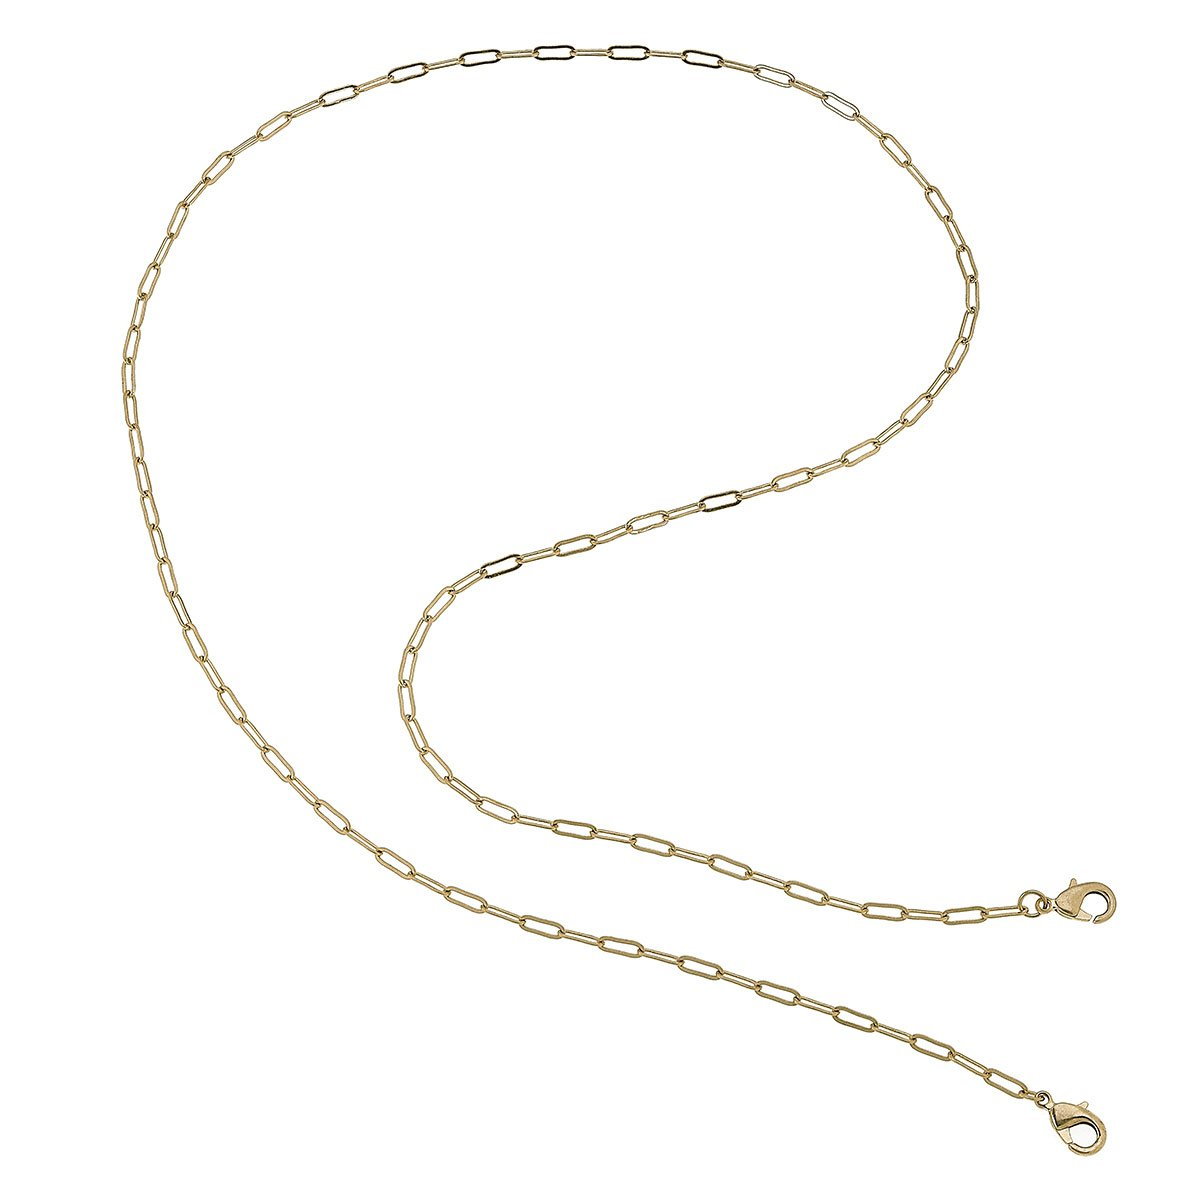 Soleil Small Paperclip Chain Mask Necklace in Gold - 32""